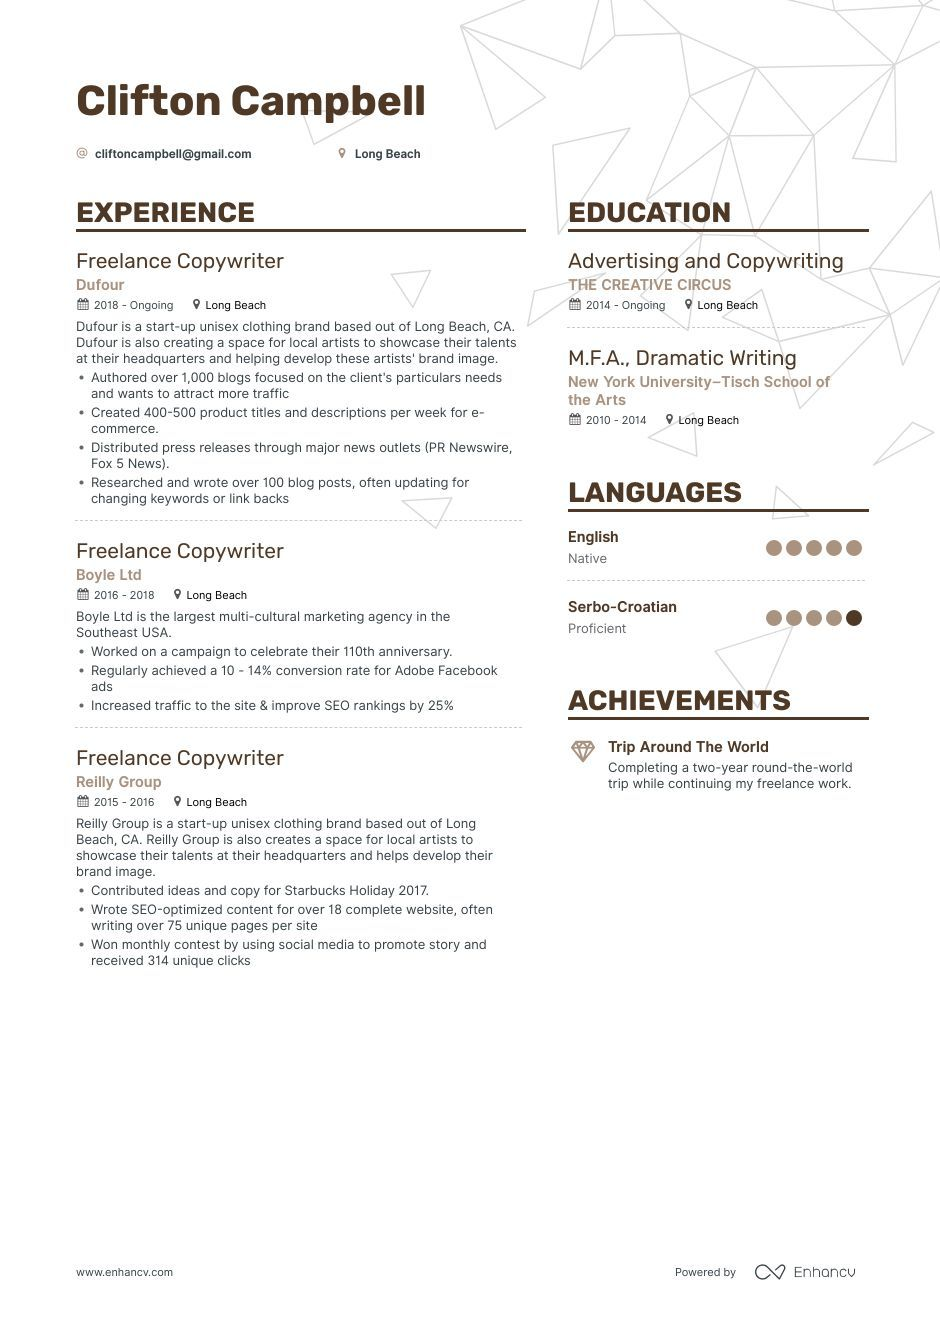 Top Freelance Copywriter Resume Examples & Samples for